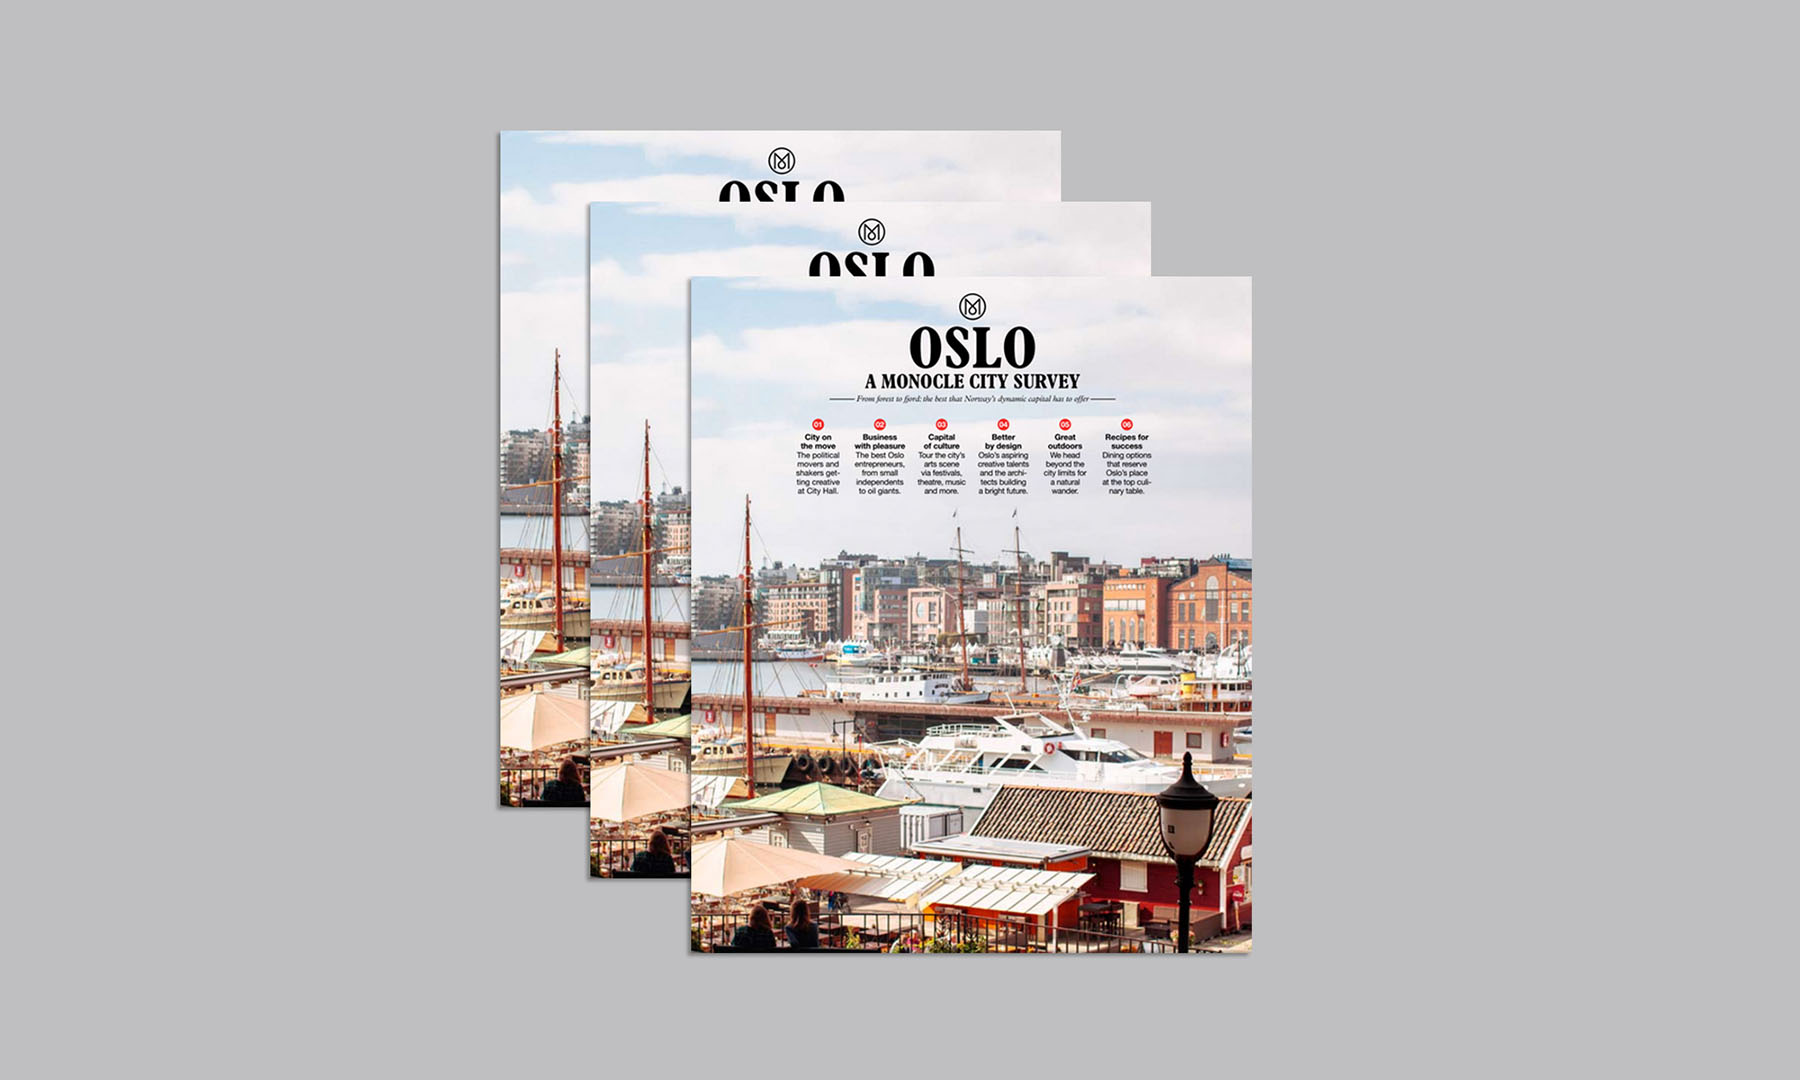 OSLO CITY SURVEY BY MONOCLE   Project management on both sides of the project, ensuring that he content of the city survey was enligned with the coming place brand management strategy for Oslo.  Advisory - Einar Kleppe Holthe  monocle.com